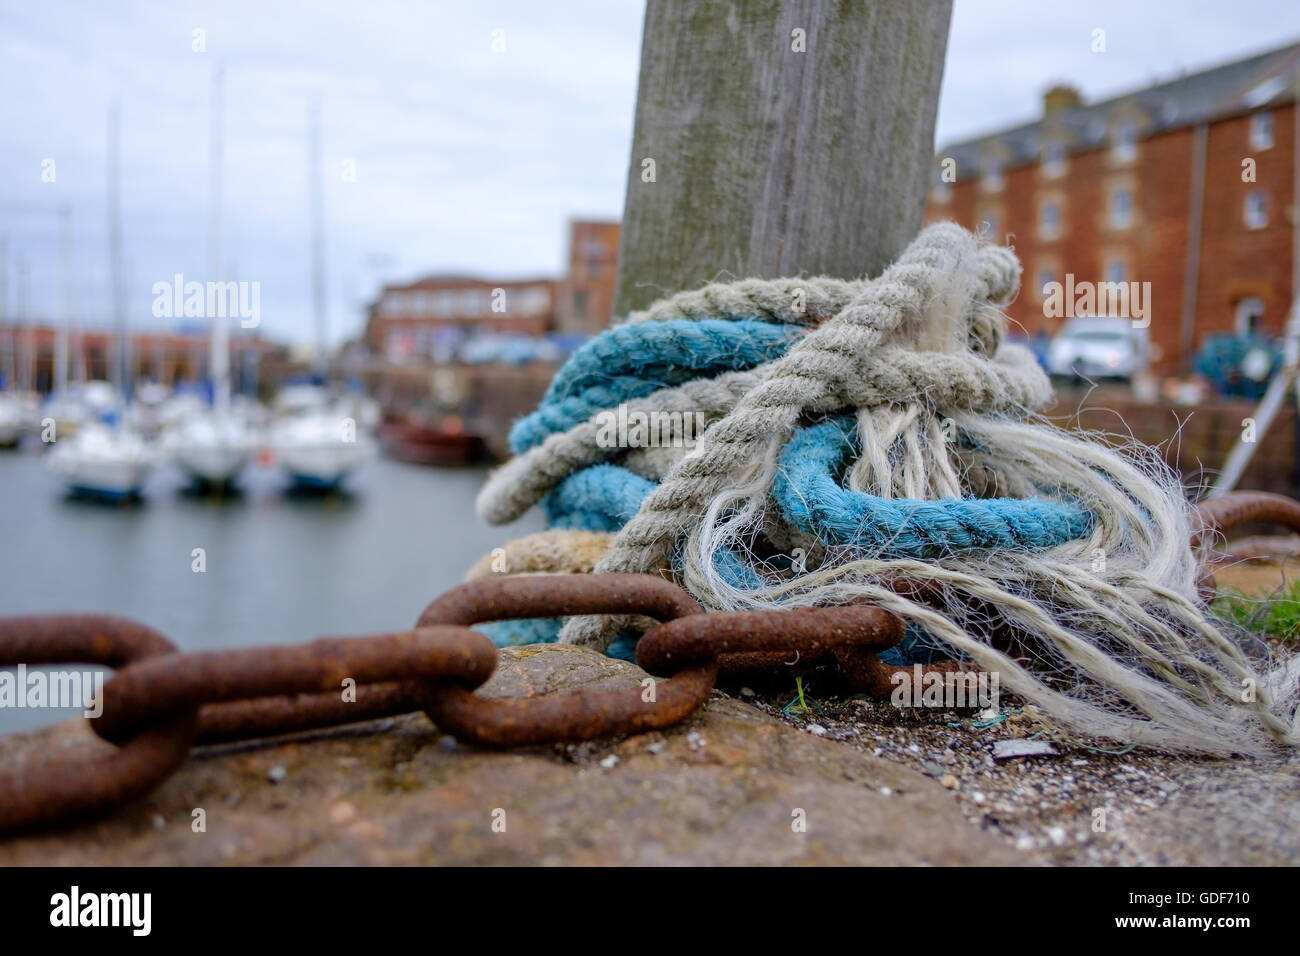 Mooring ropes and chains at the harbour in North Berwick, Scotland. - Stock Image